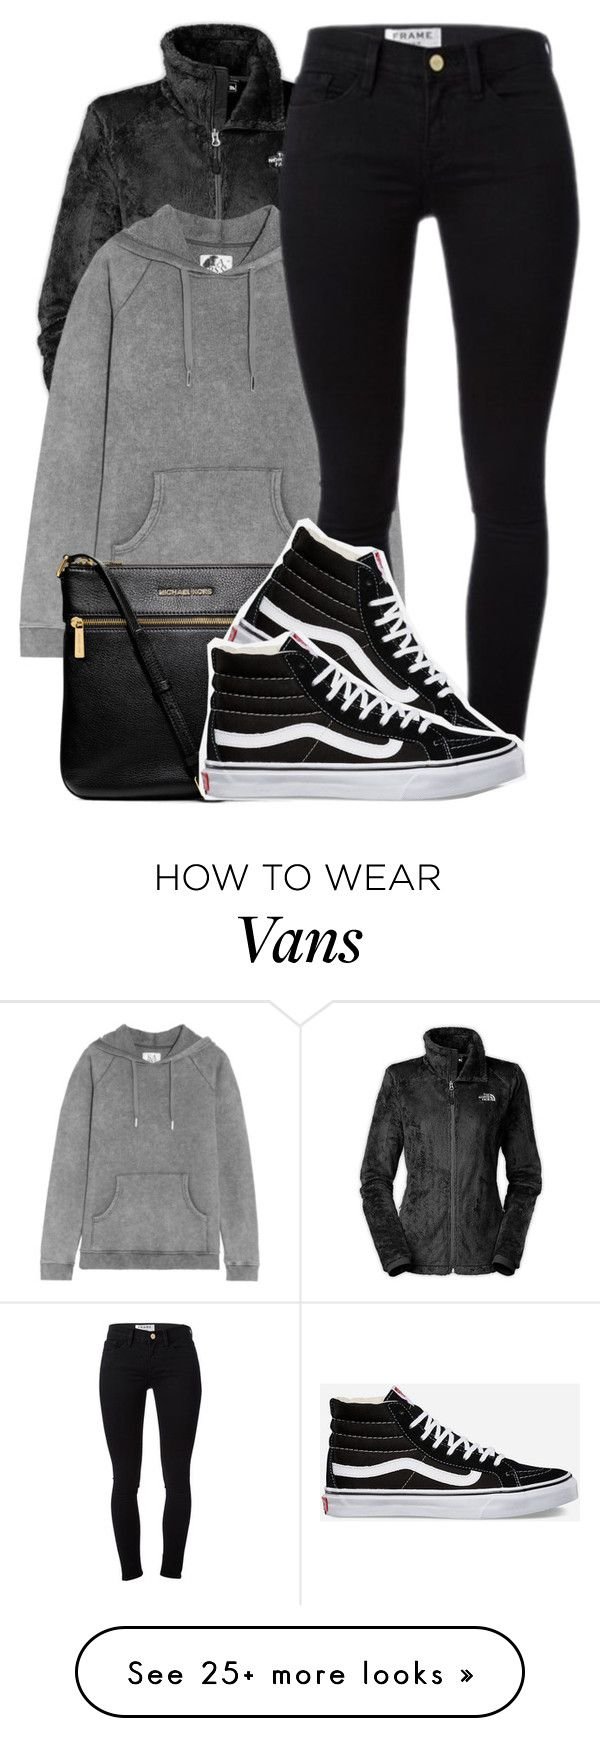 """basically what I'm wearing right now"" by society-is-ugly on Polyvore featuring The North Face, Zoe Karssen, Frame Denim, MICHAEL Michael Kors and Vans"